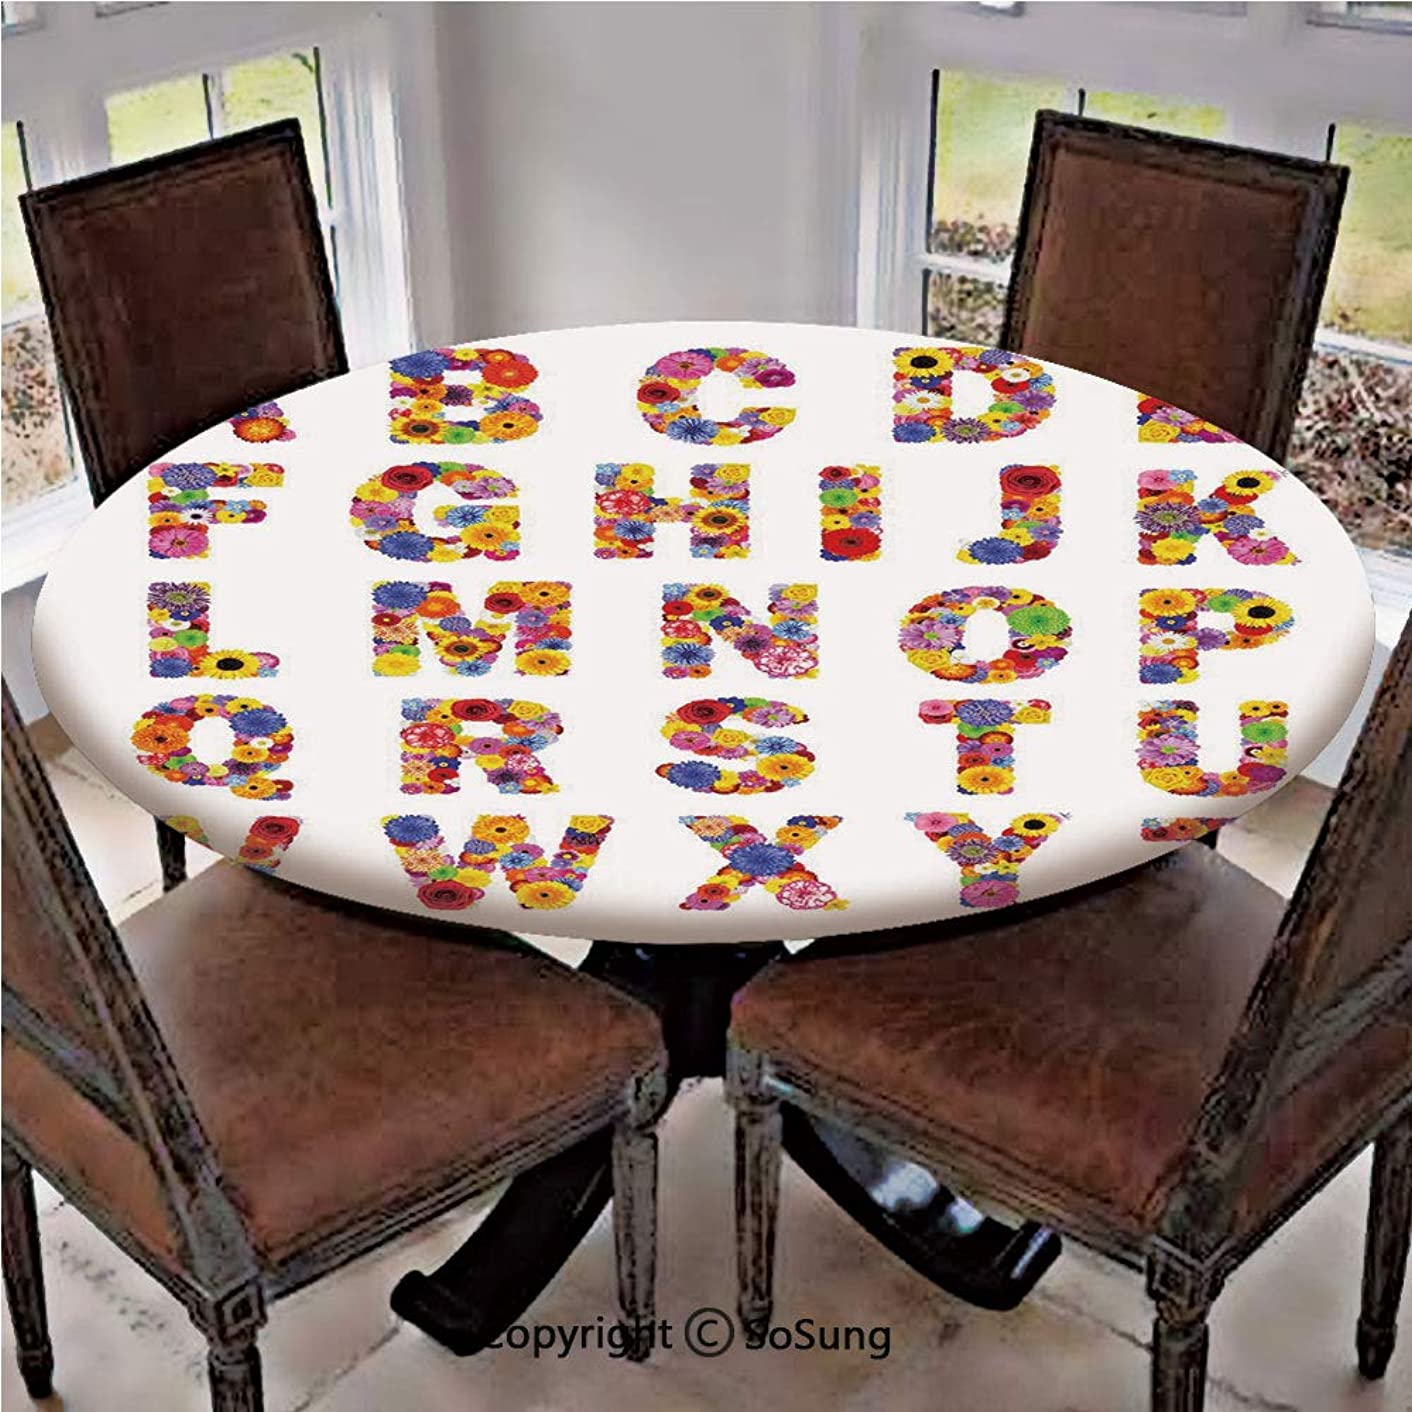 Elastic Edged Polyester Fitted Table Cover,Colorful Vibrant Alphabet with Flowers Gardening Plants Blooming Dahlia Cornflower Decorative,Fits up to 36